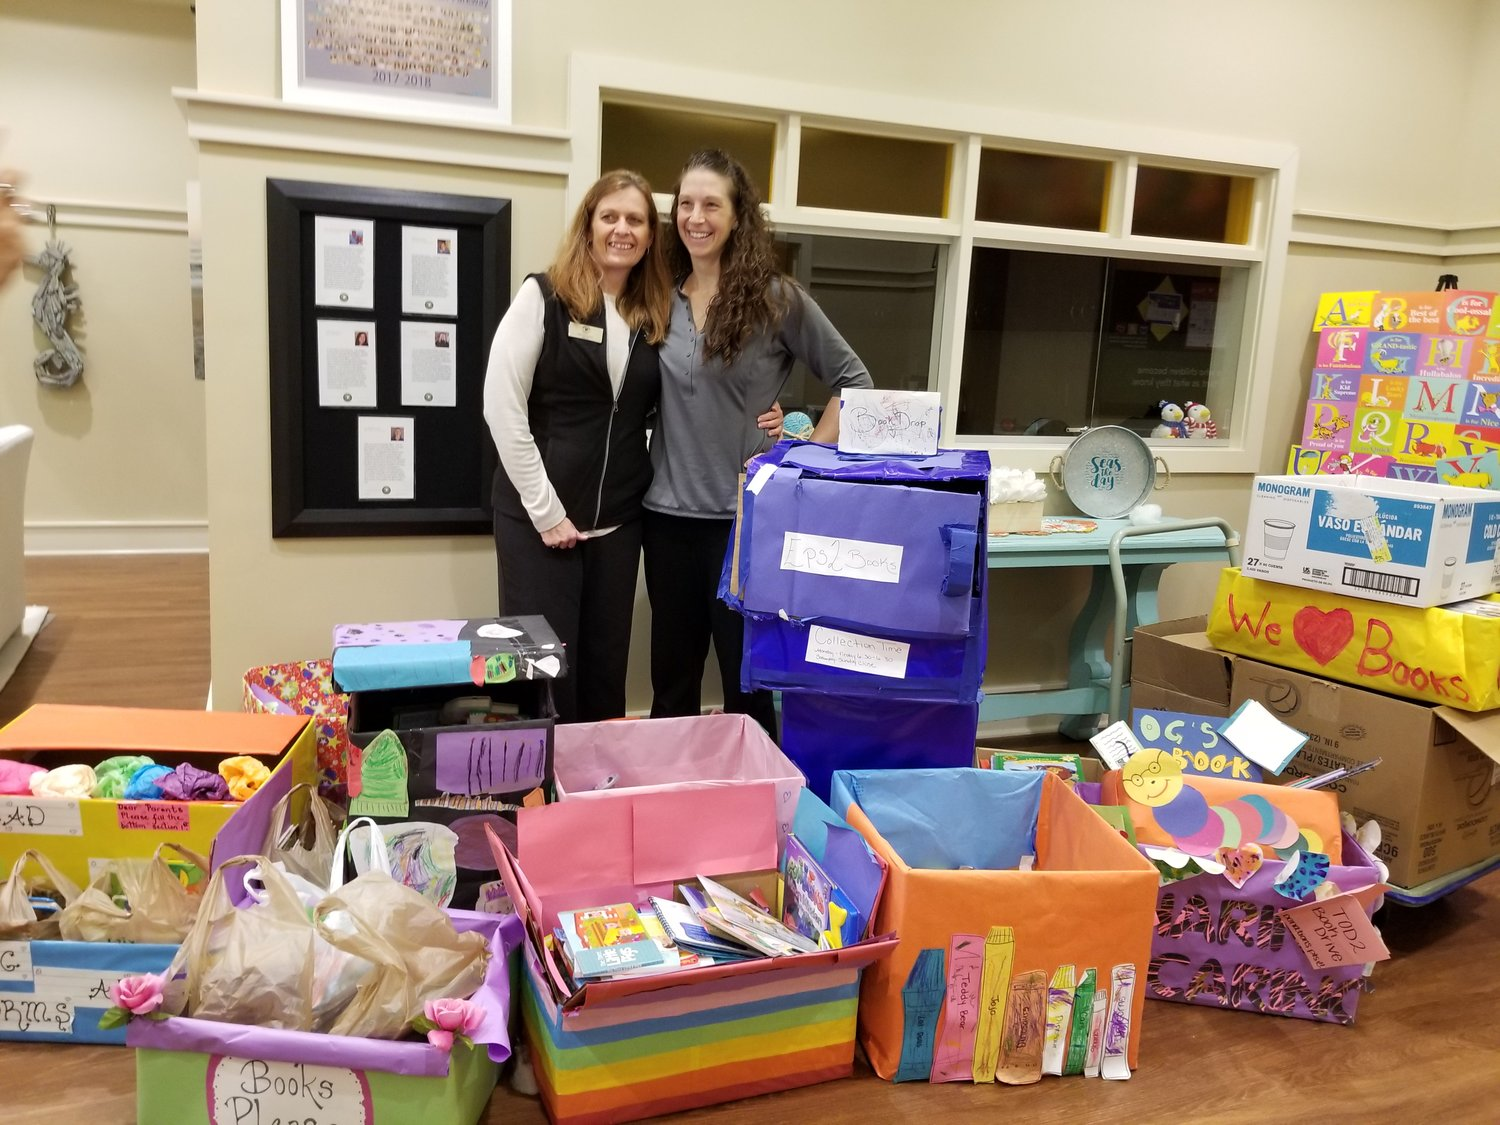 Kim Shannon and Kayleigh Toblin of Primrose School in Nocatee gather with some of the books that were collected in a February book drive. Three local Primrose Schools held drives and collected 2,000 books.